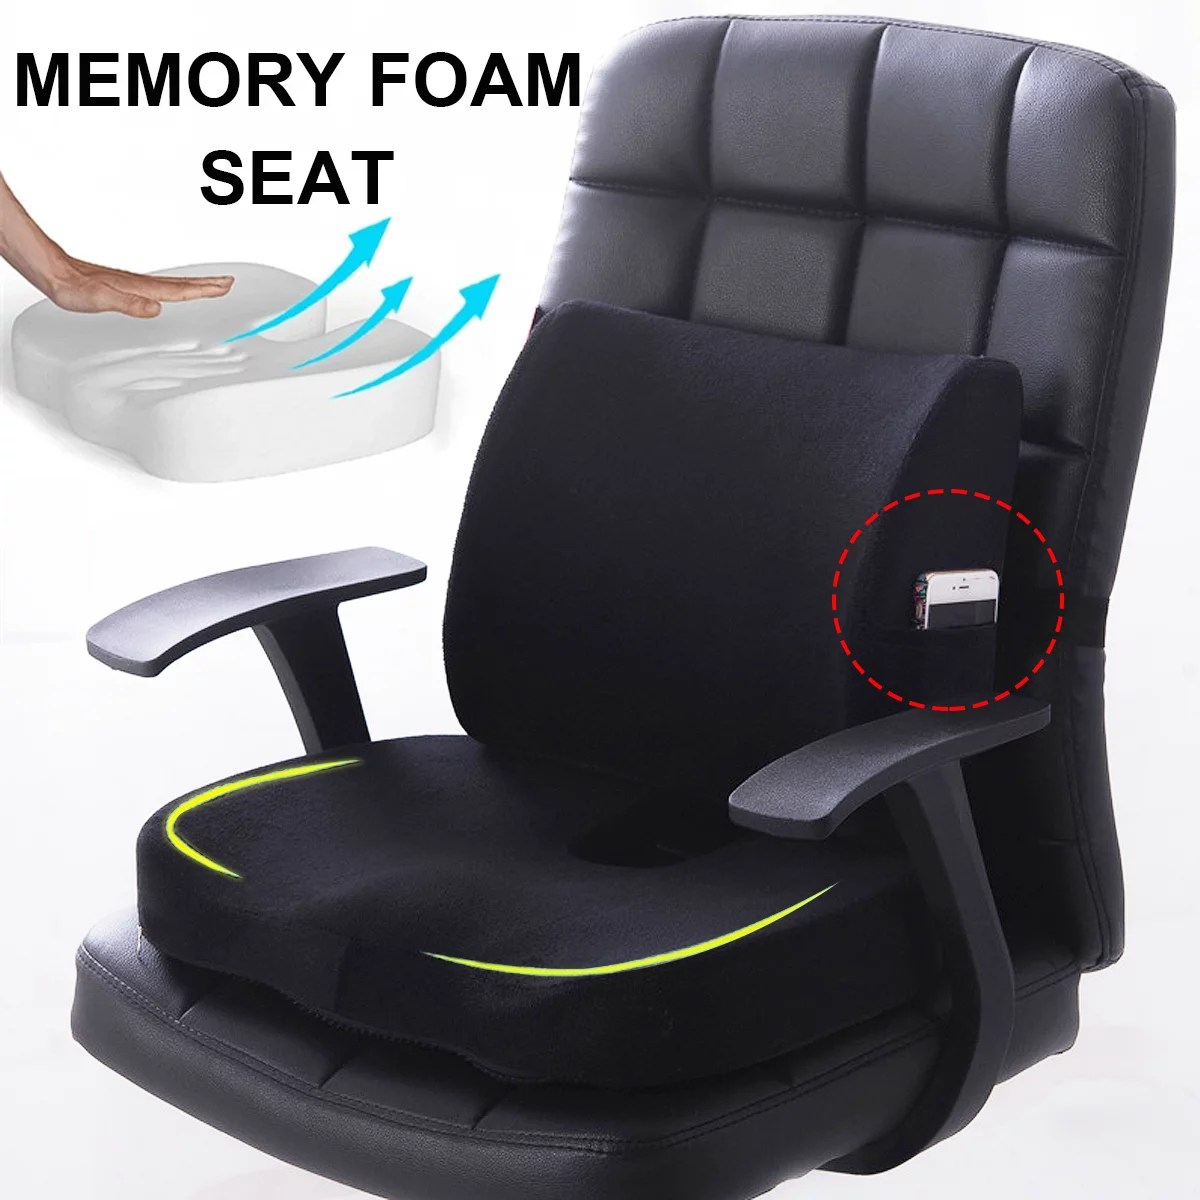 stoneway 2 pcs memory foam seat cushion chair back support lumbar car home office pillow promotes healthy posture spine alignment 4 colors